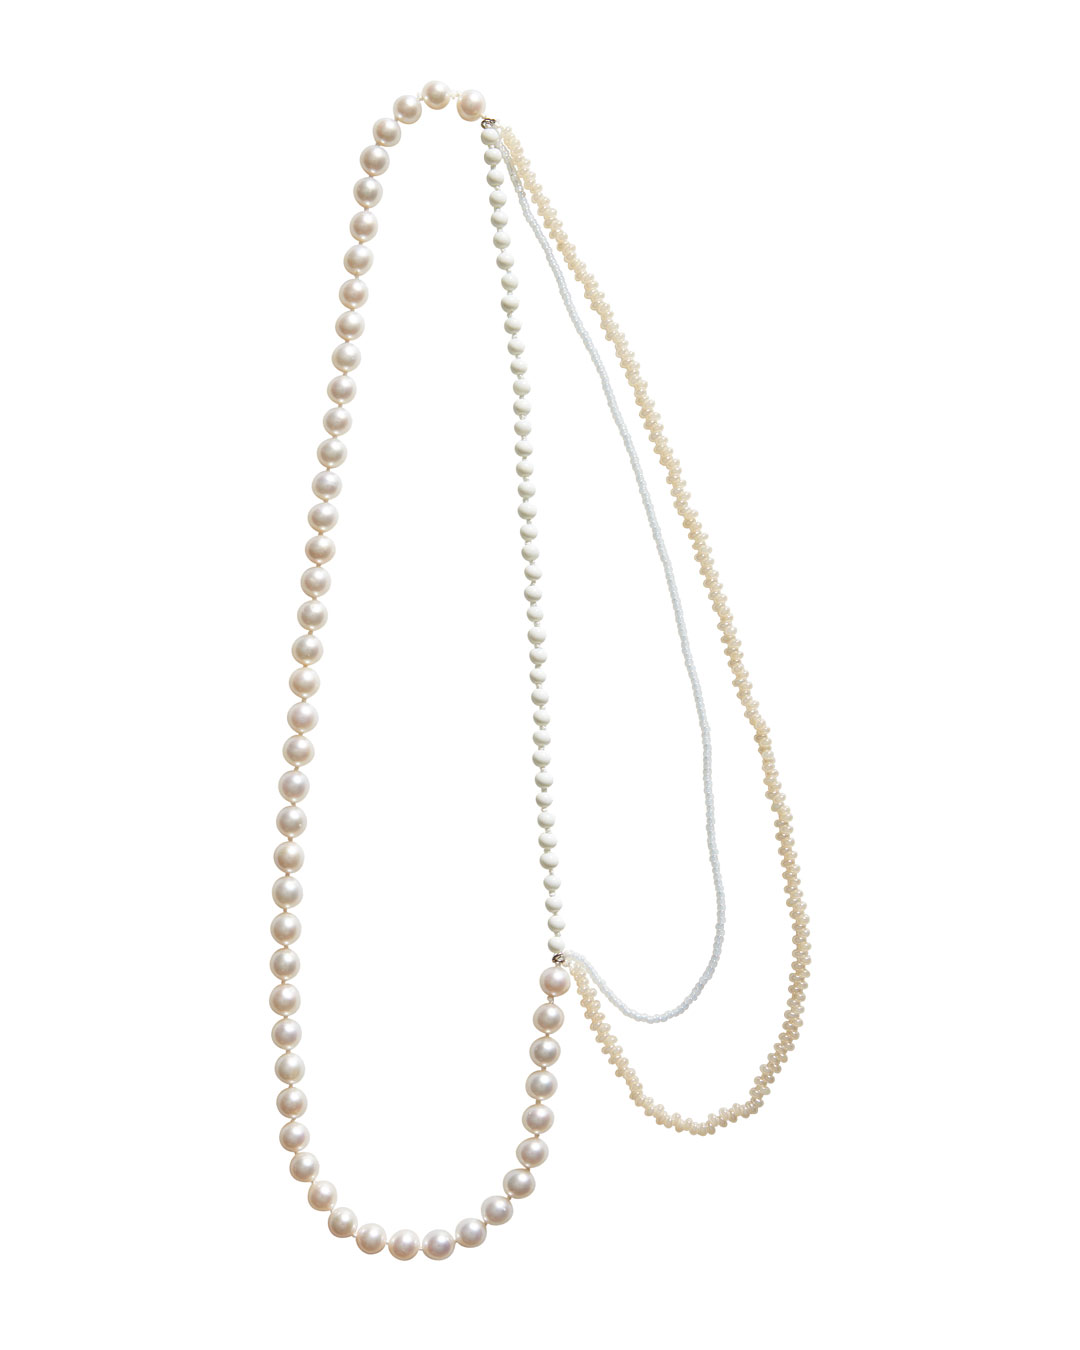 Annelies Planteijdt, Mooie stad - Witte water (Beautiful City - White Water), 2020, necklace; freshwater pearls, porcelain, Japanese glass beads, white gold, yarn, 630 mm, €1375